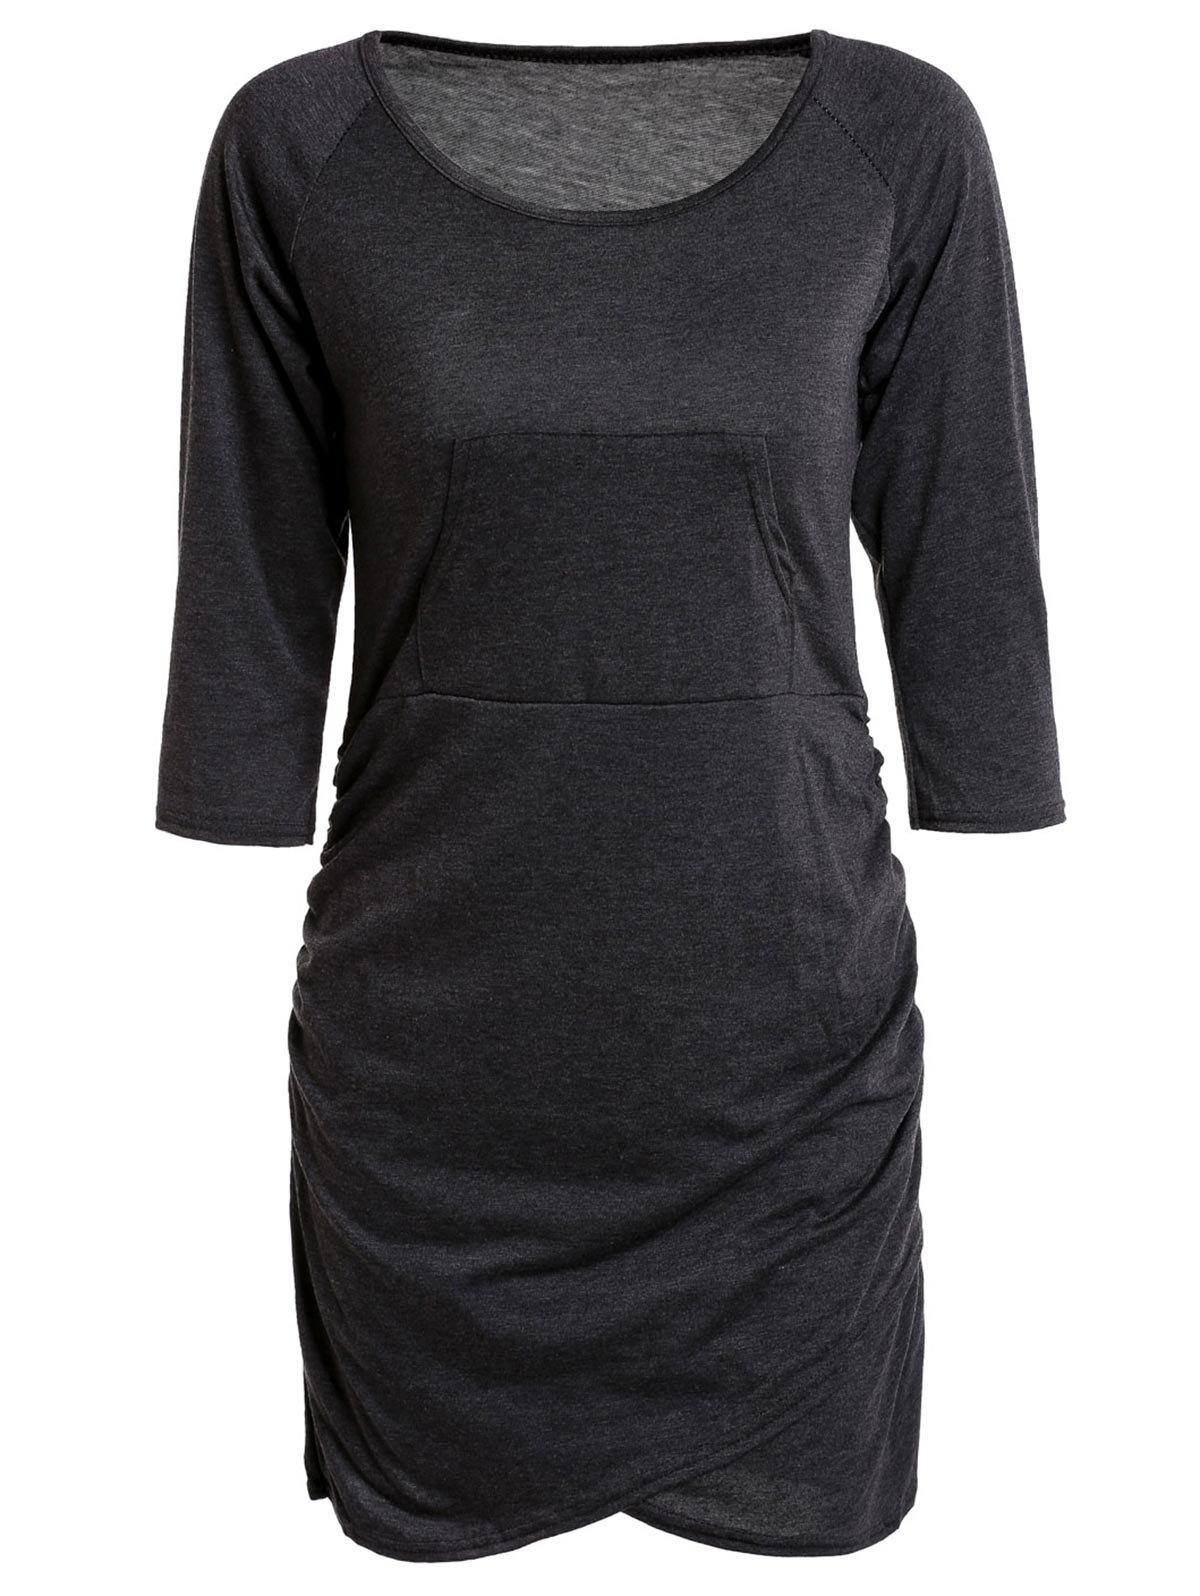 Chic Low-Cut Scoop Neck Solid Color 3/4 Sleeve Asymmetric Bodycon Dress For Women - BLACK GREY S